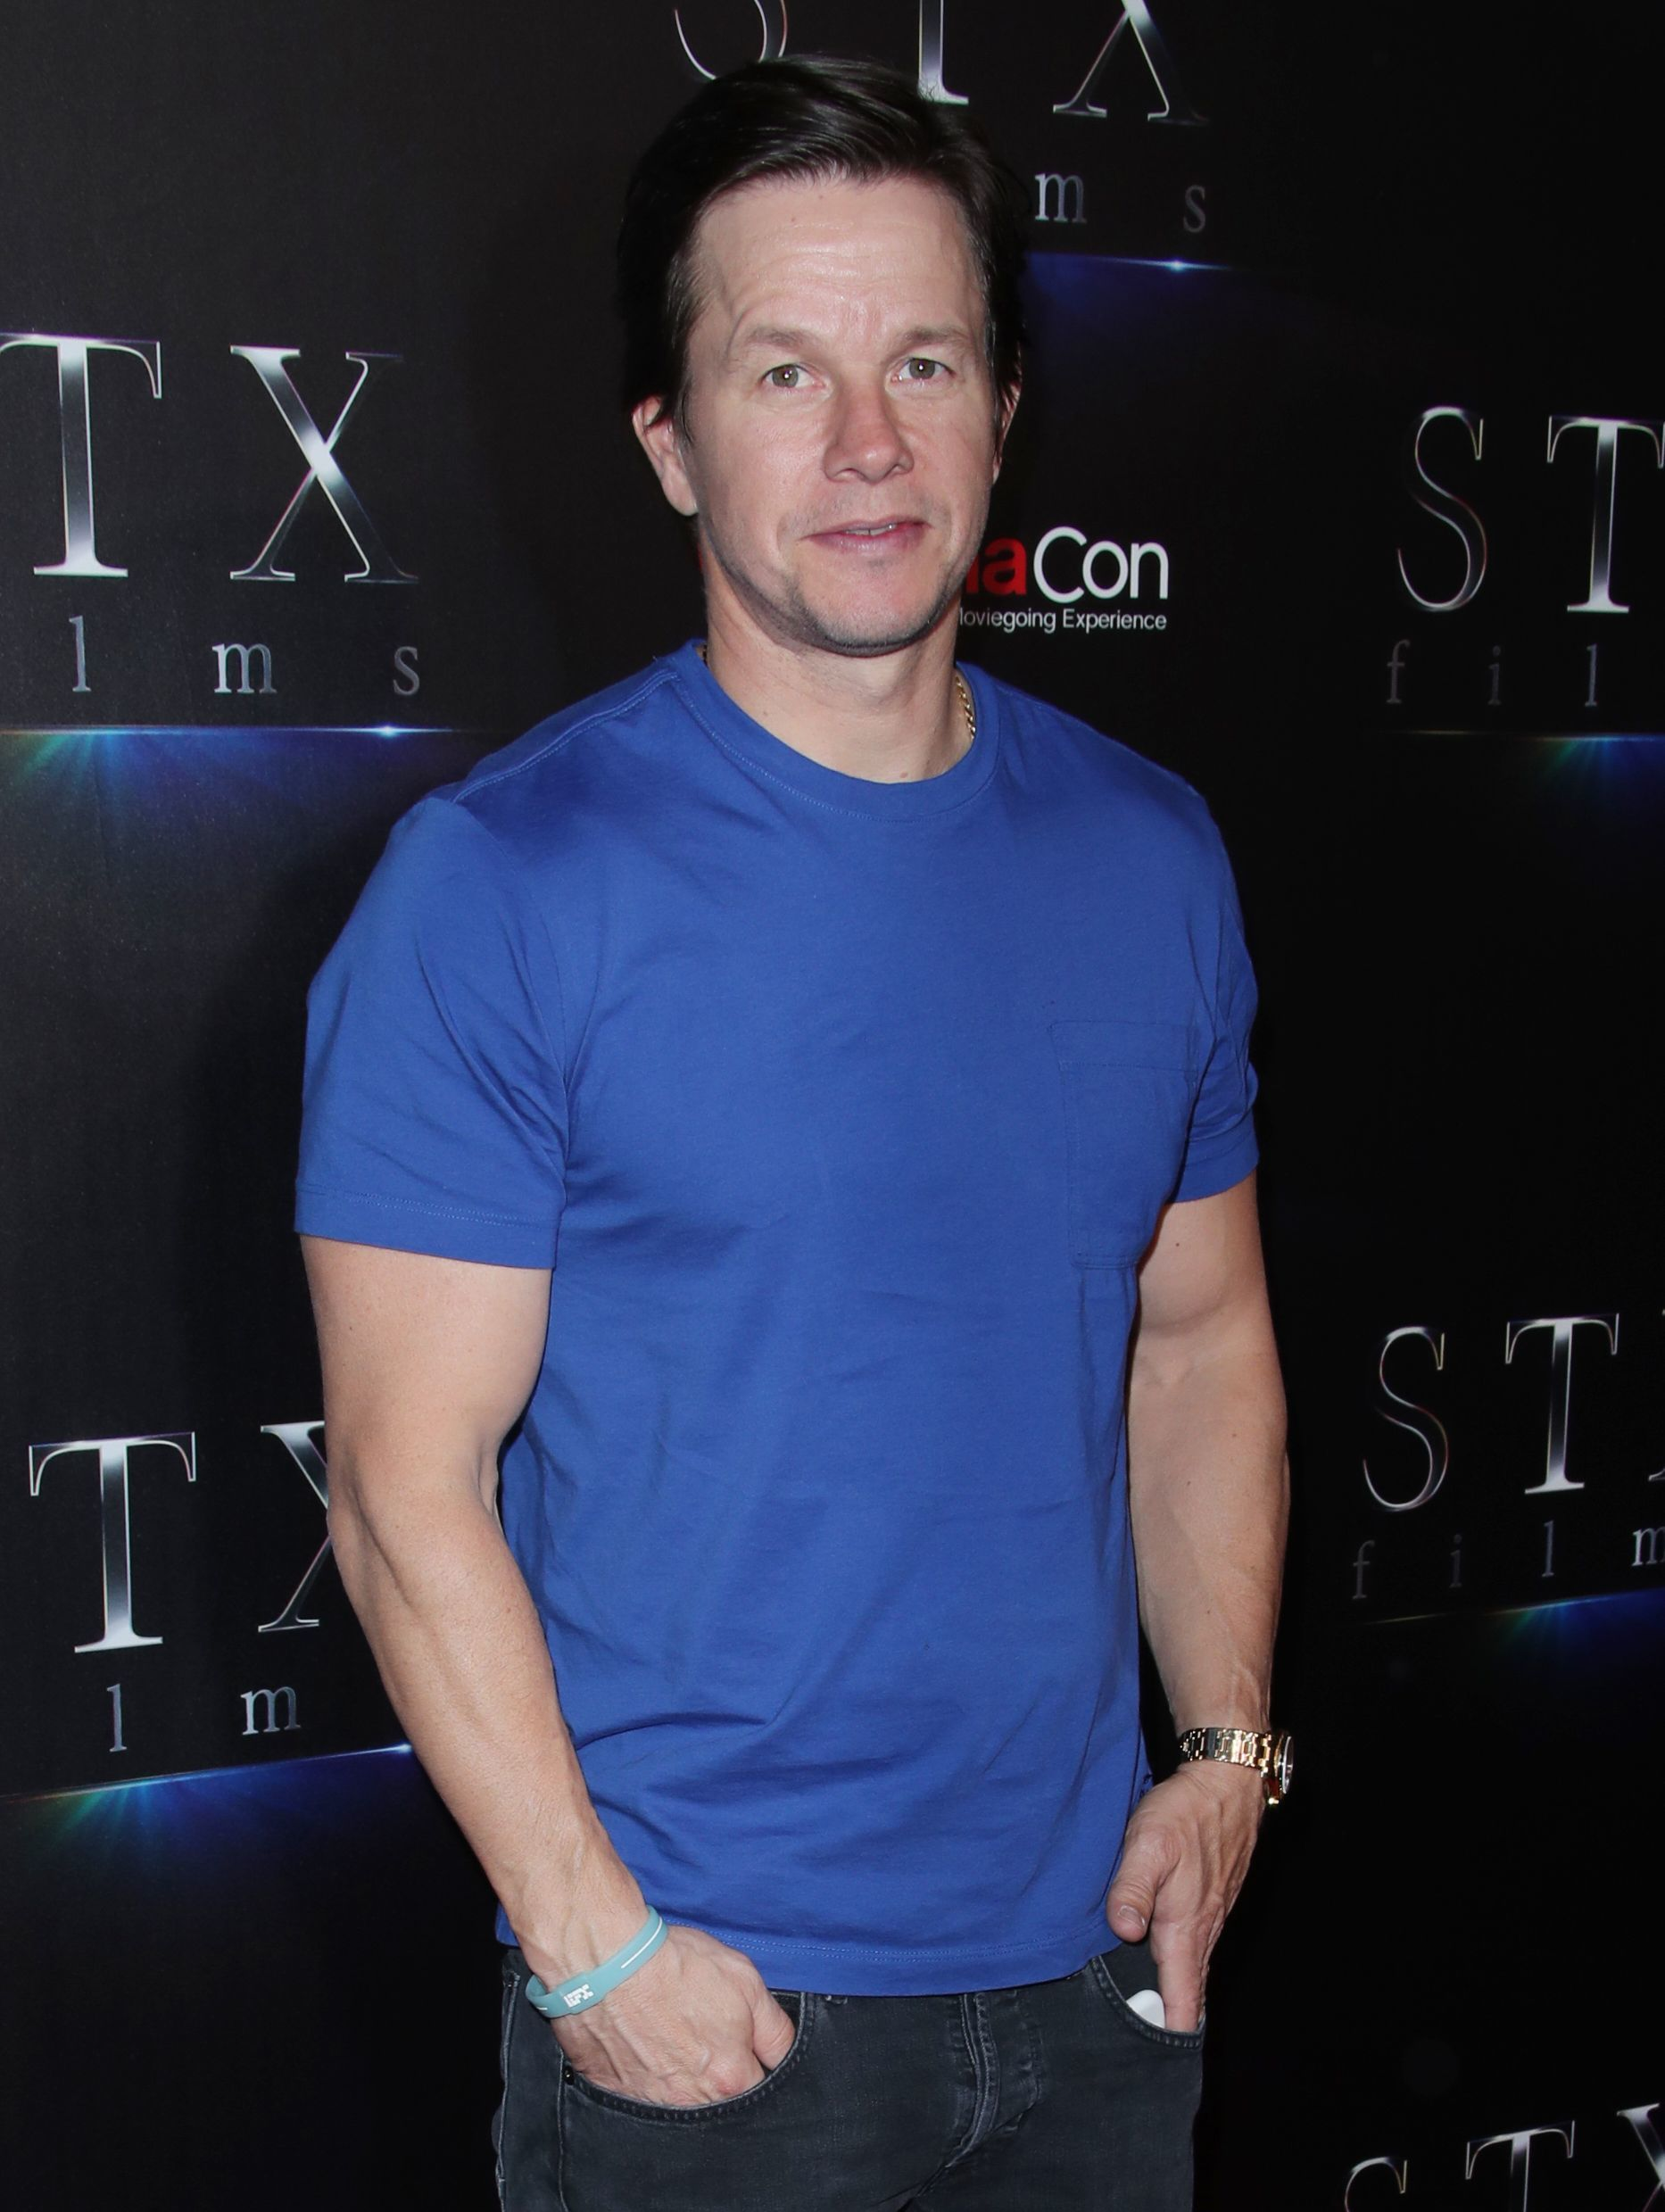 Mark Wahlberg attends the An Evening with STXfilms presentatio during CinemaCon in Las on April 24, 2018.